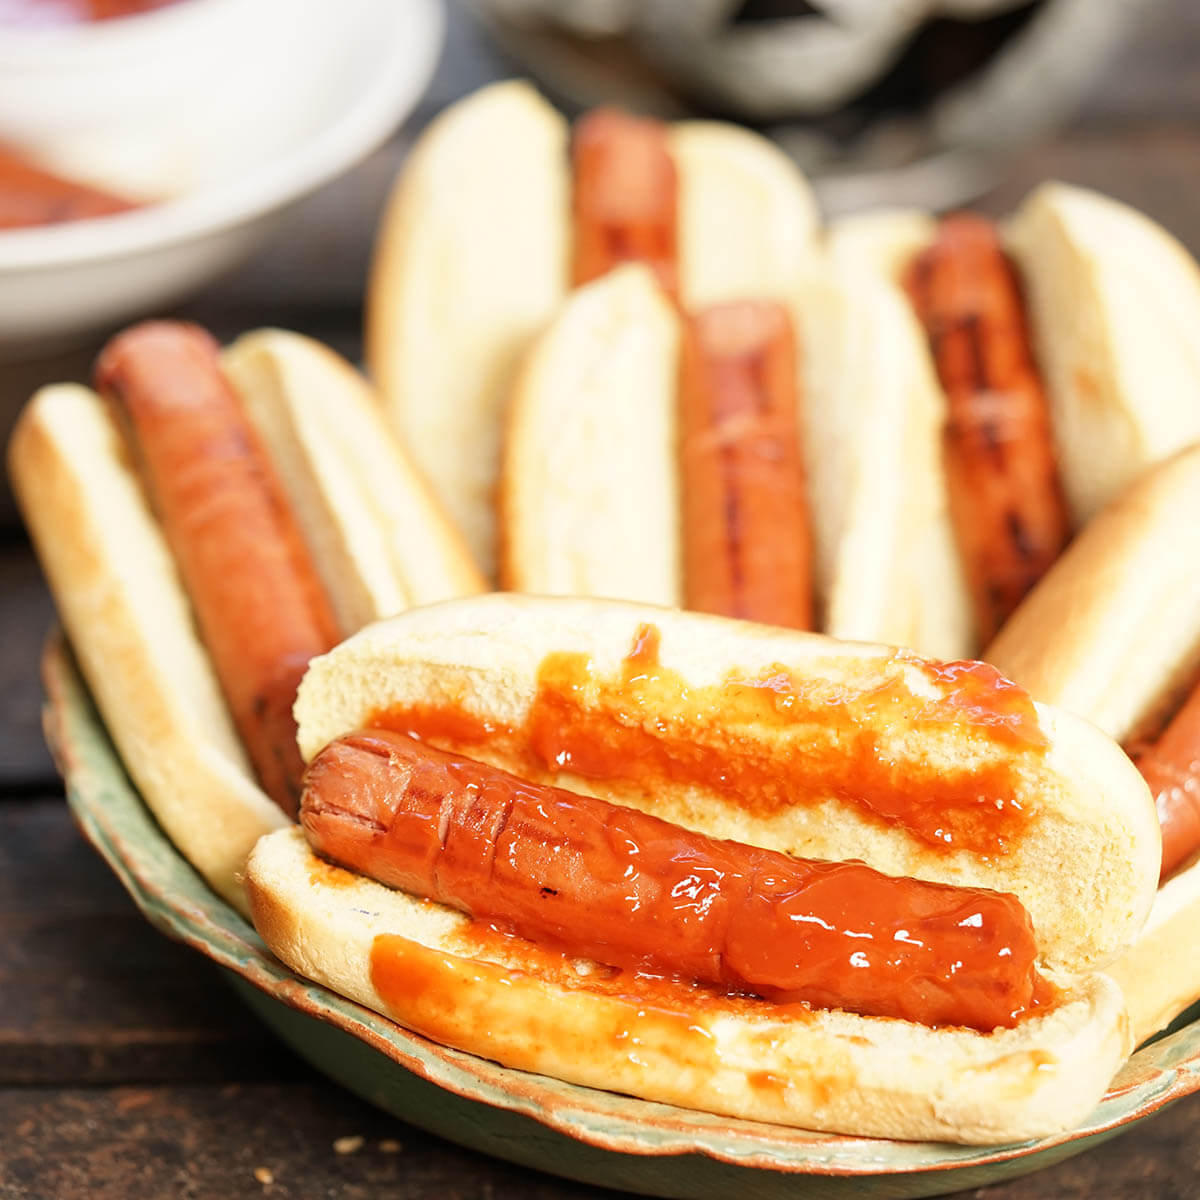 Hot dogs carved to look like finger that are in a bun topped with catsup.